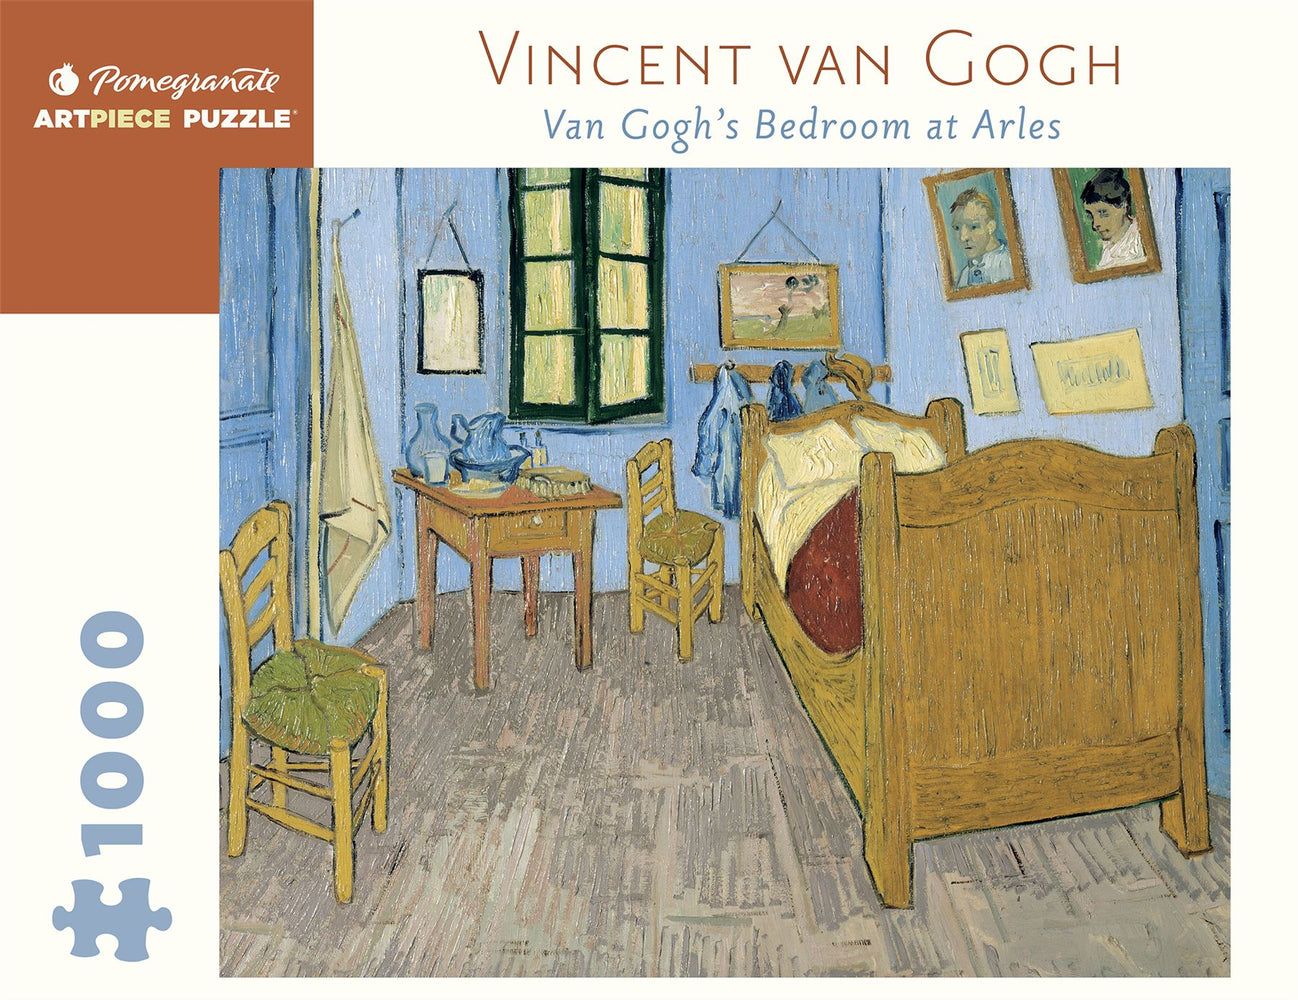 Vincent van Gogh: Van Gogh's Bedroom at Arles 1000 Piece Jigsaw